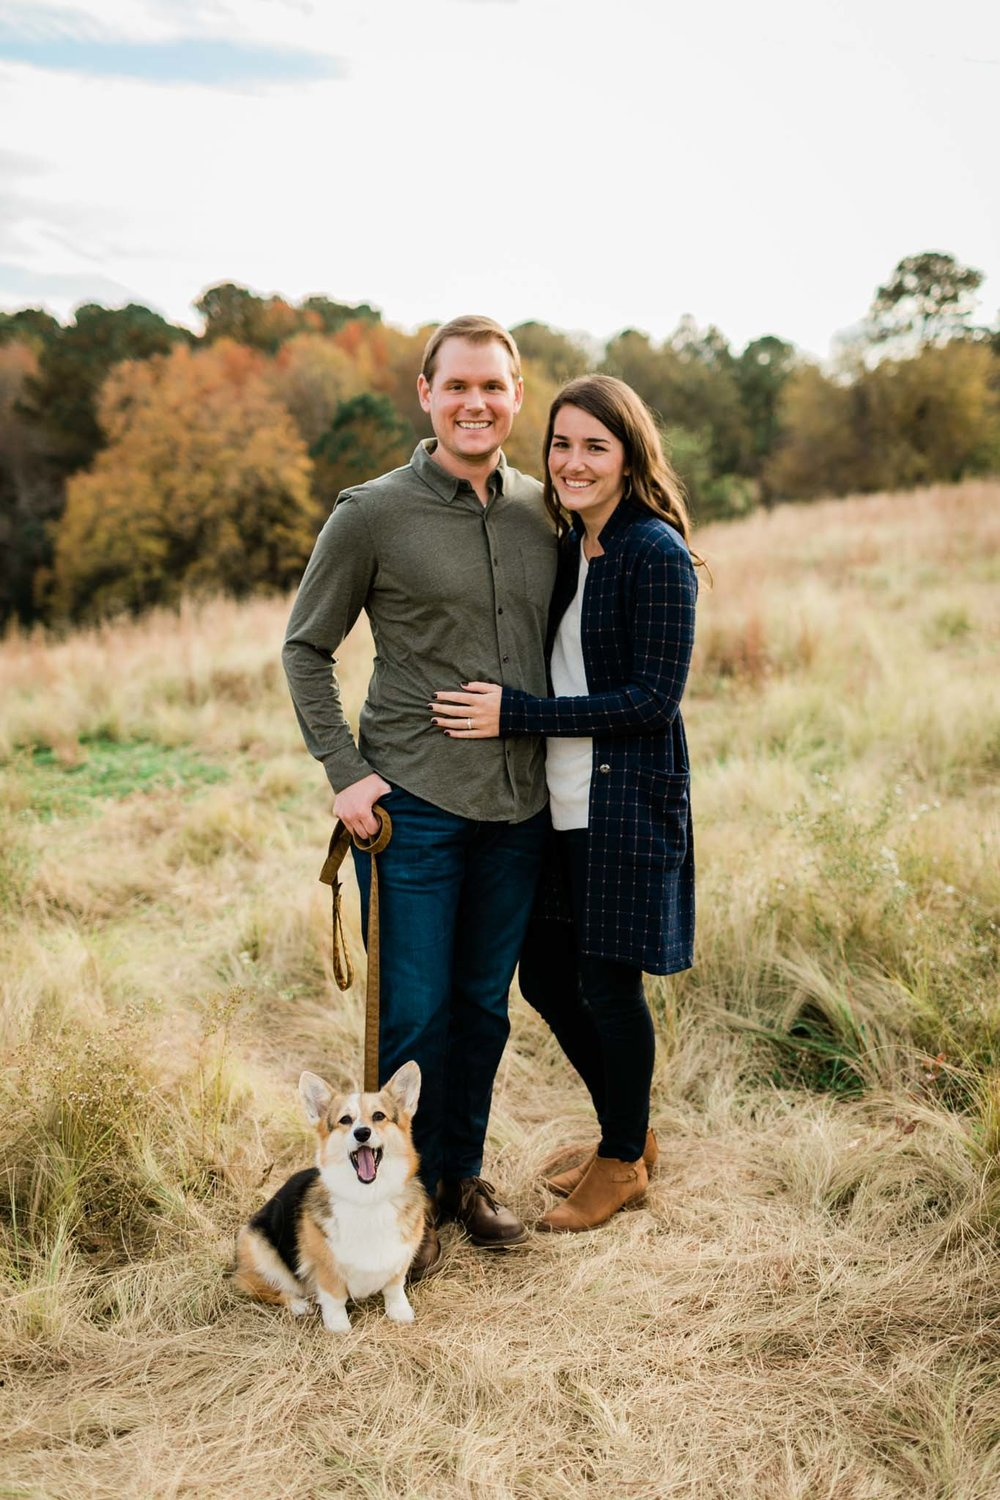 Outdoor family session with dog in open field | Raleigh Family Photographer | By G. Lin Photography